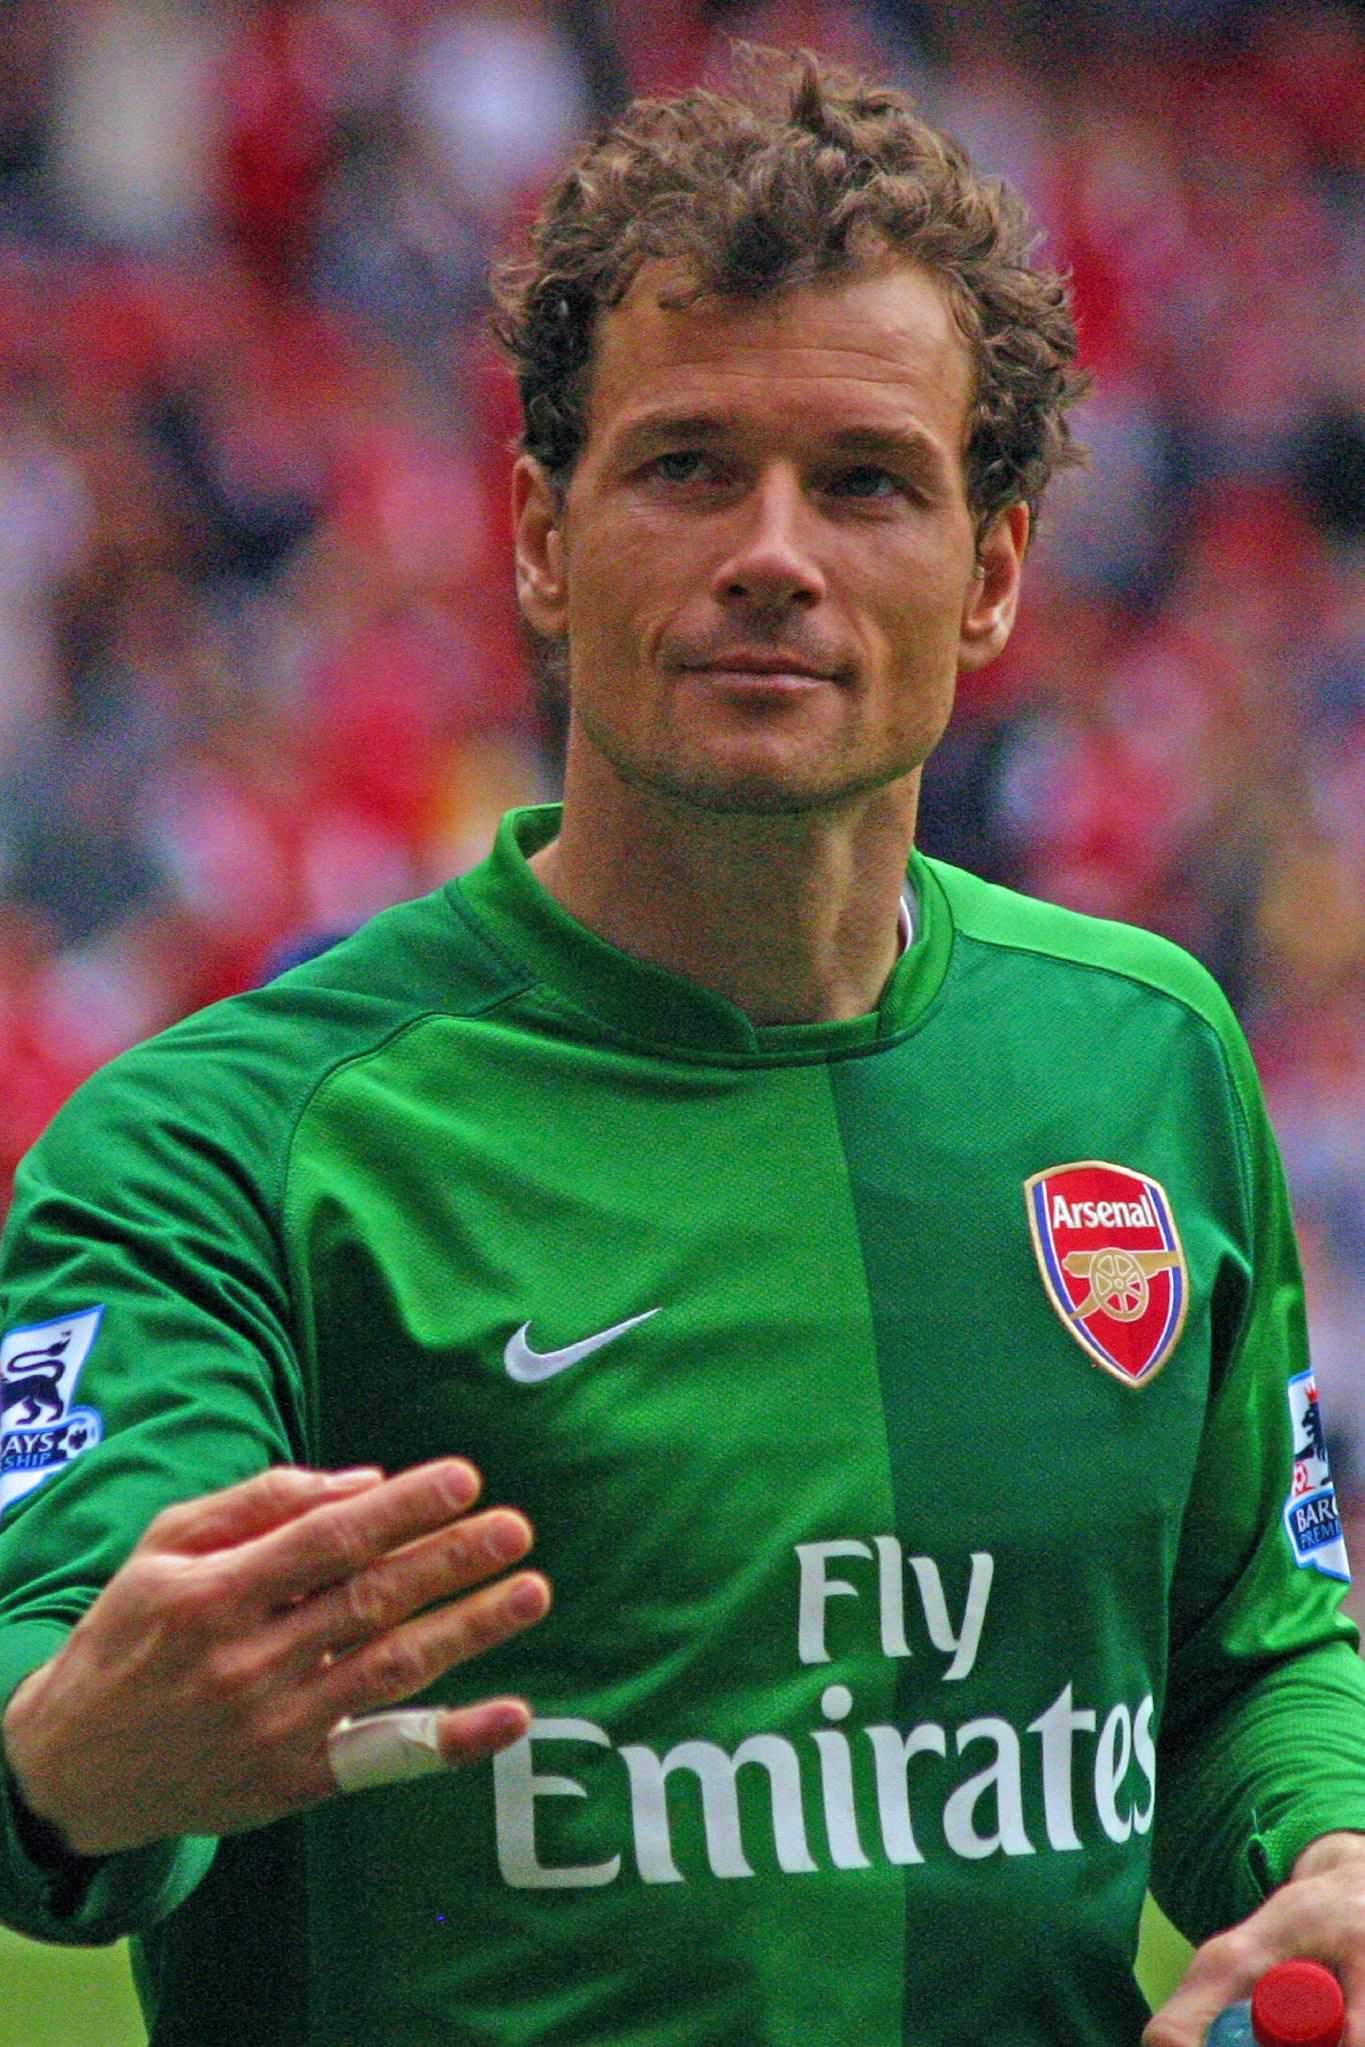 The 48-year old son of father Hans-Dieter  and mother(?) Jens Lehmann in 2018 photo. Jens Lehmann earned a  million dollar salary - leaving the net worth at 6 million in 2018